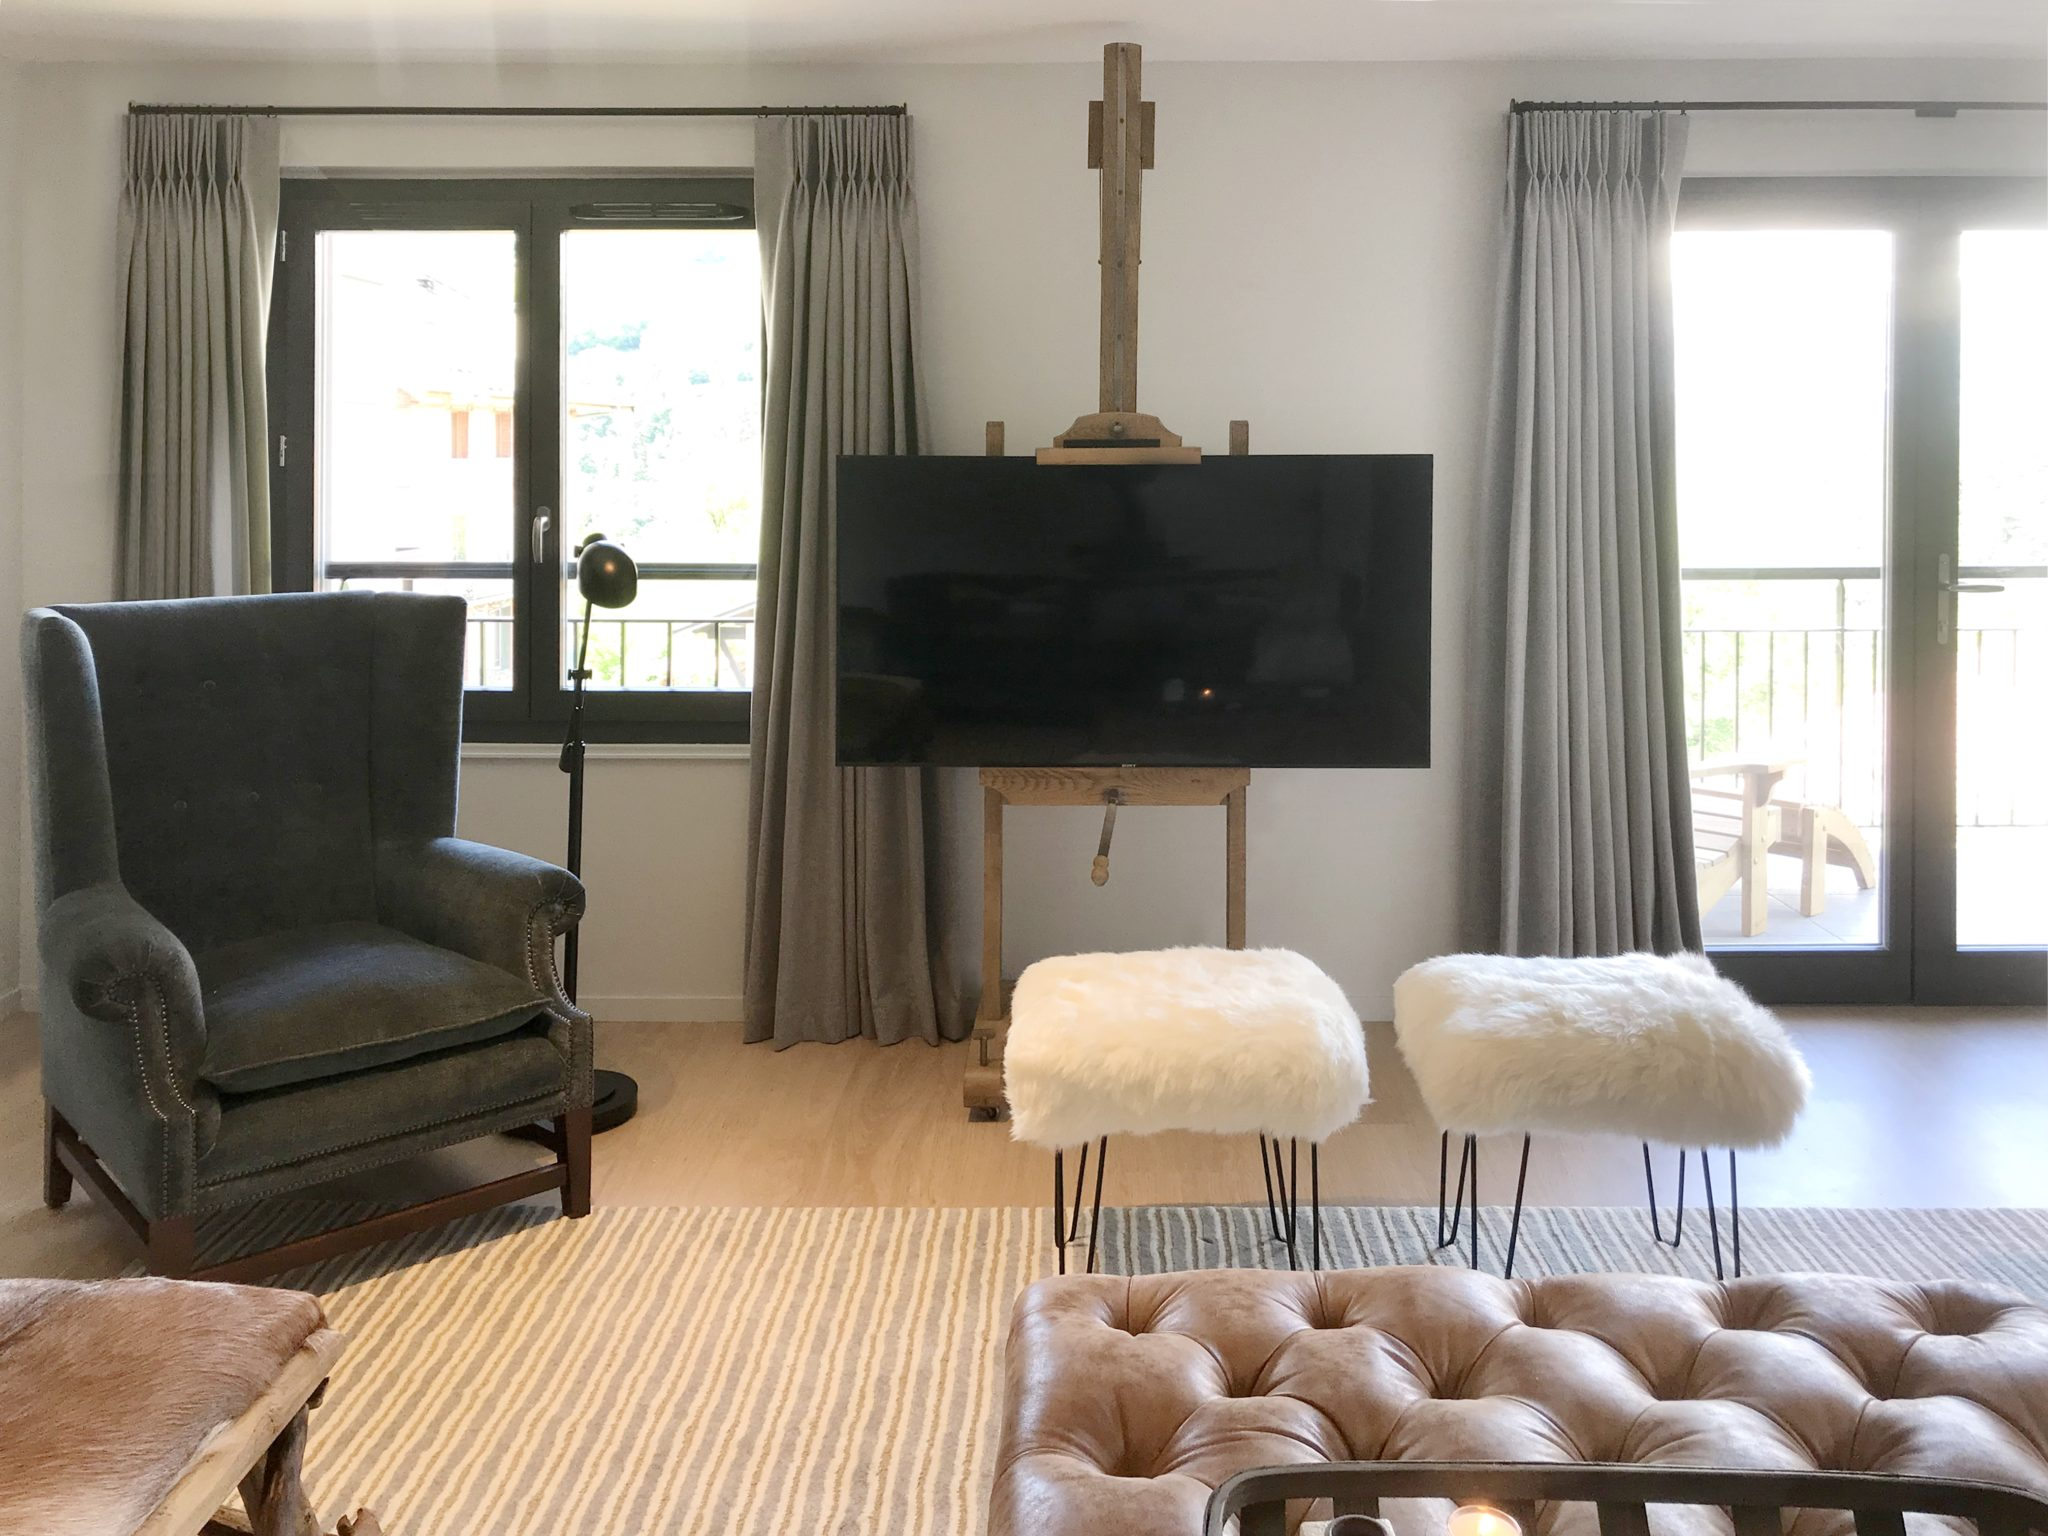 """DECIDE ON THE FUNCTION OF THE SPACE   For multi-purpose rooms that function both for entertainingandentertainment, it may be best to hide the TV. """"We often hide the TVbehind art or wall panels so that it's not on display,"""" says Audrey Carden, co-founder ofCarden Cunietti. """"If the room is solely for TV watching, then we make the seating as comfortable as possible with foot stools or ottomans for extra relaxation."""" When theTV can't be hidden in an entertaining space, make itlook as beautiful as possible. """"In this room we didn't have a wall that lent itself to built-in joinery, so we decided to make a feature of the TV and mount it on an easel."""" Technology becomes art.   A living room and TV area in a French chalet by Carden Cunietti."""